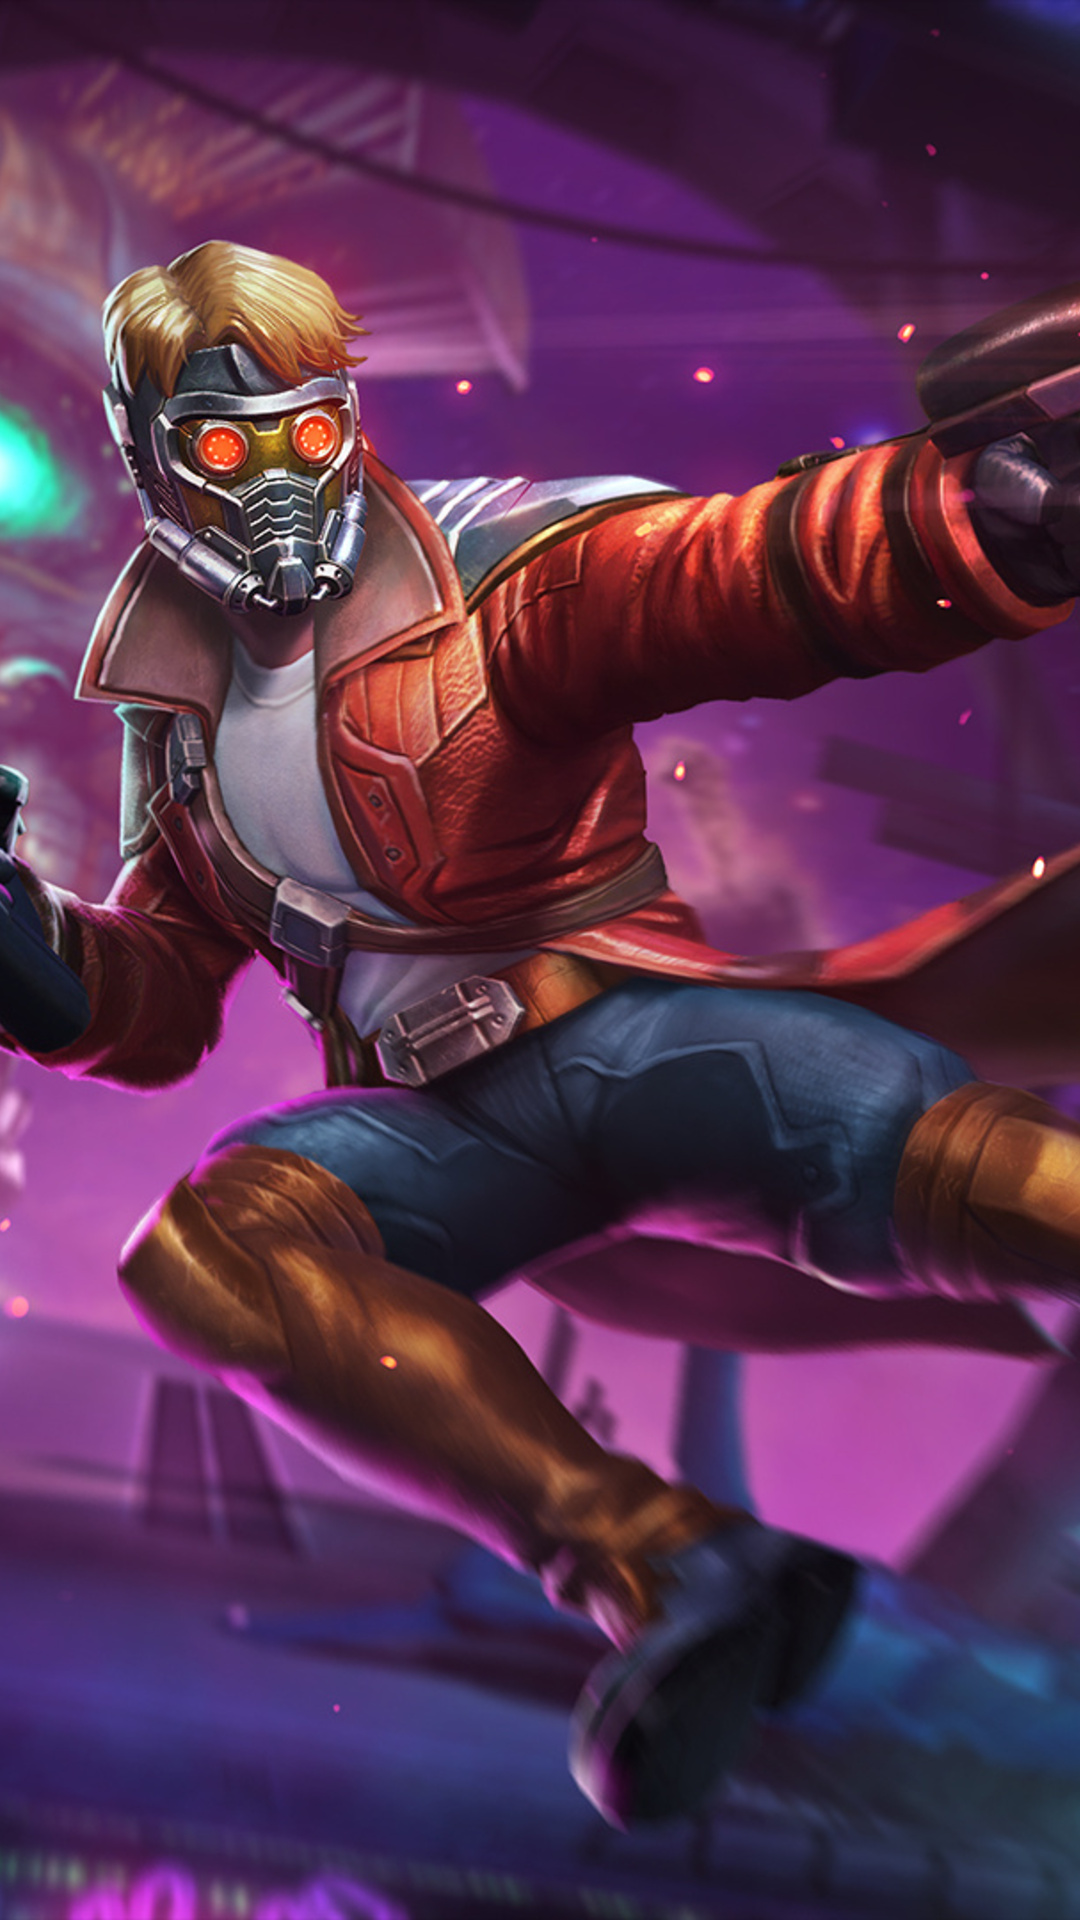 Top Wallpaper Lord Iphone 6 - peter-quill-star-lord-marvel-contest-of-champions-lg-1080x1920  Best Photo Reference_68814.jpg